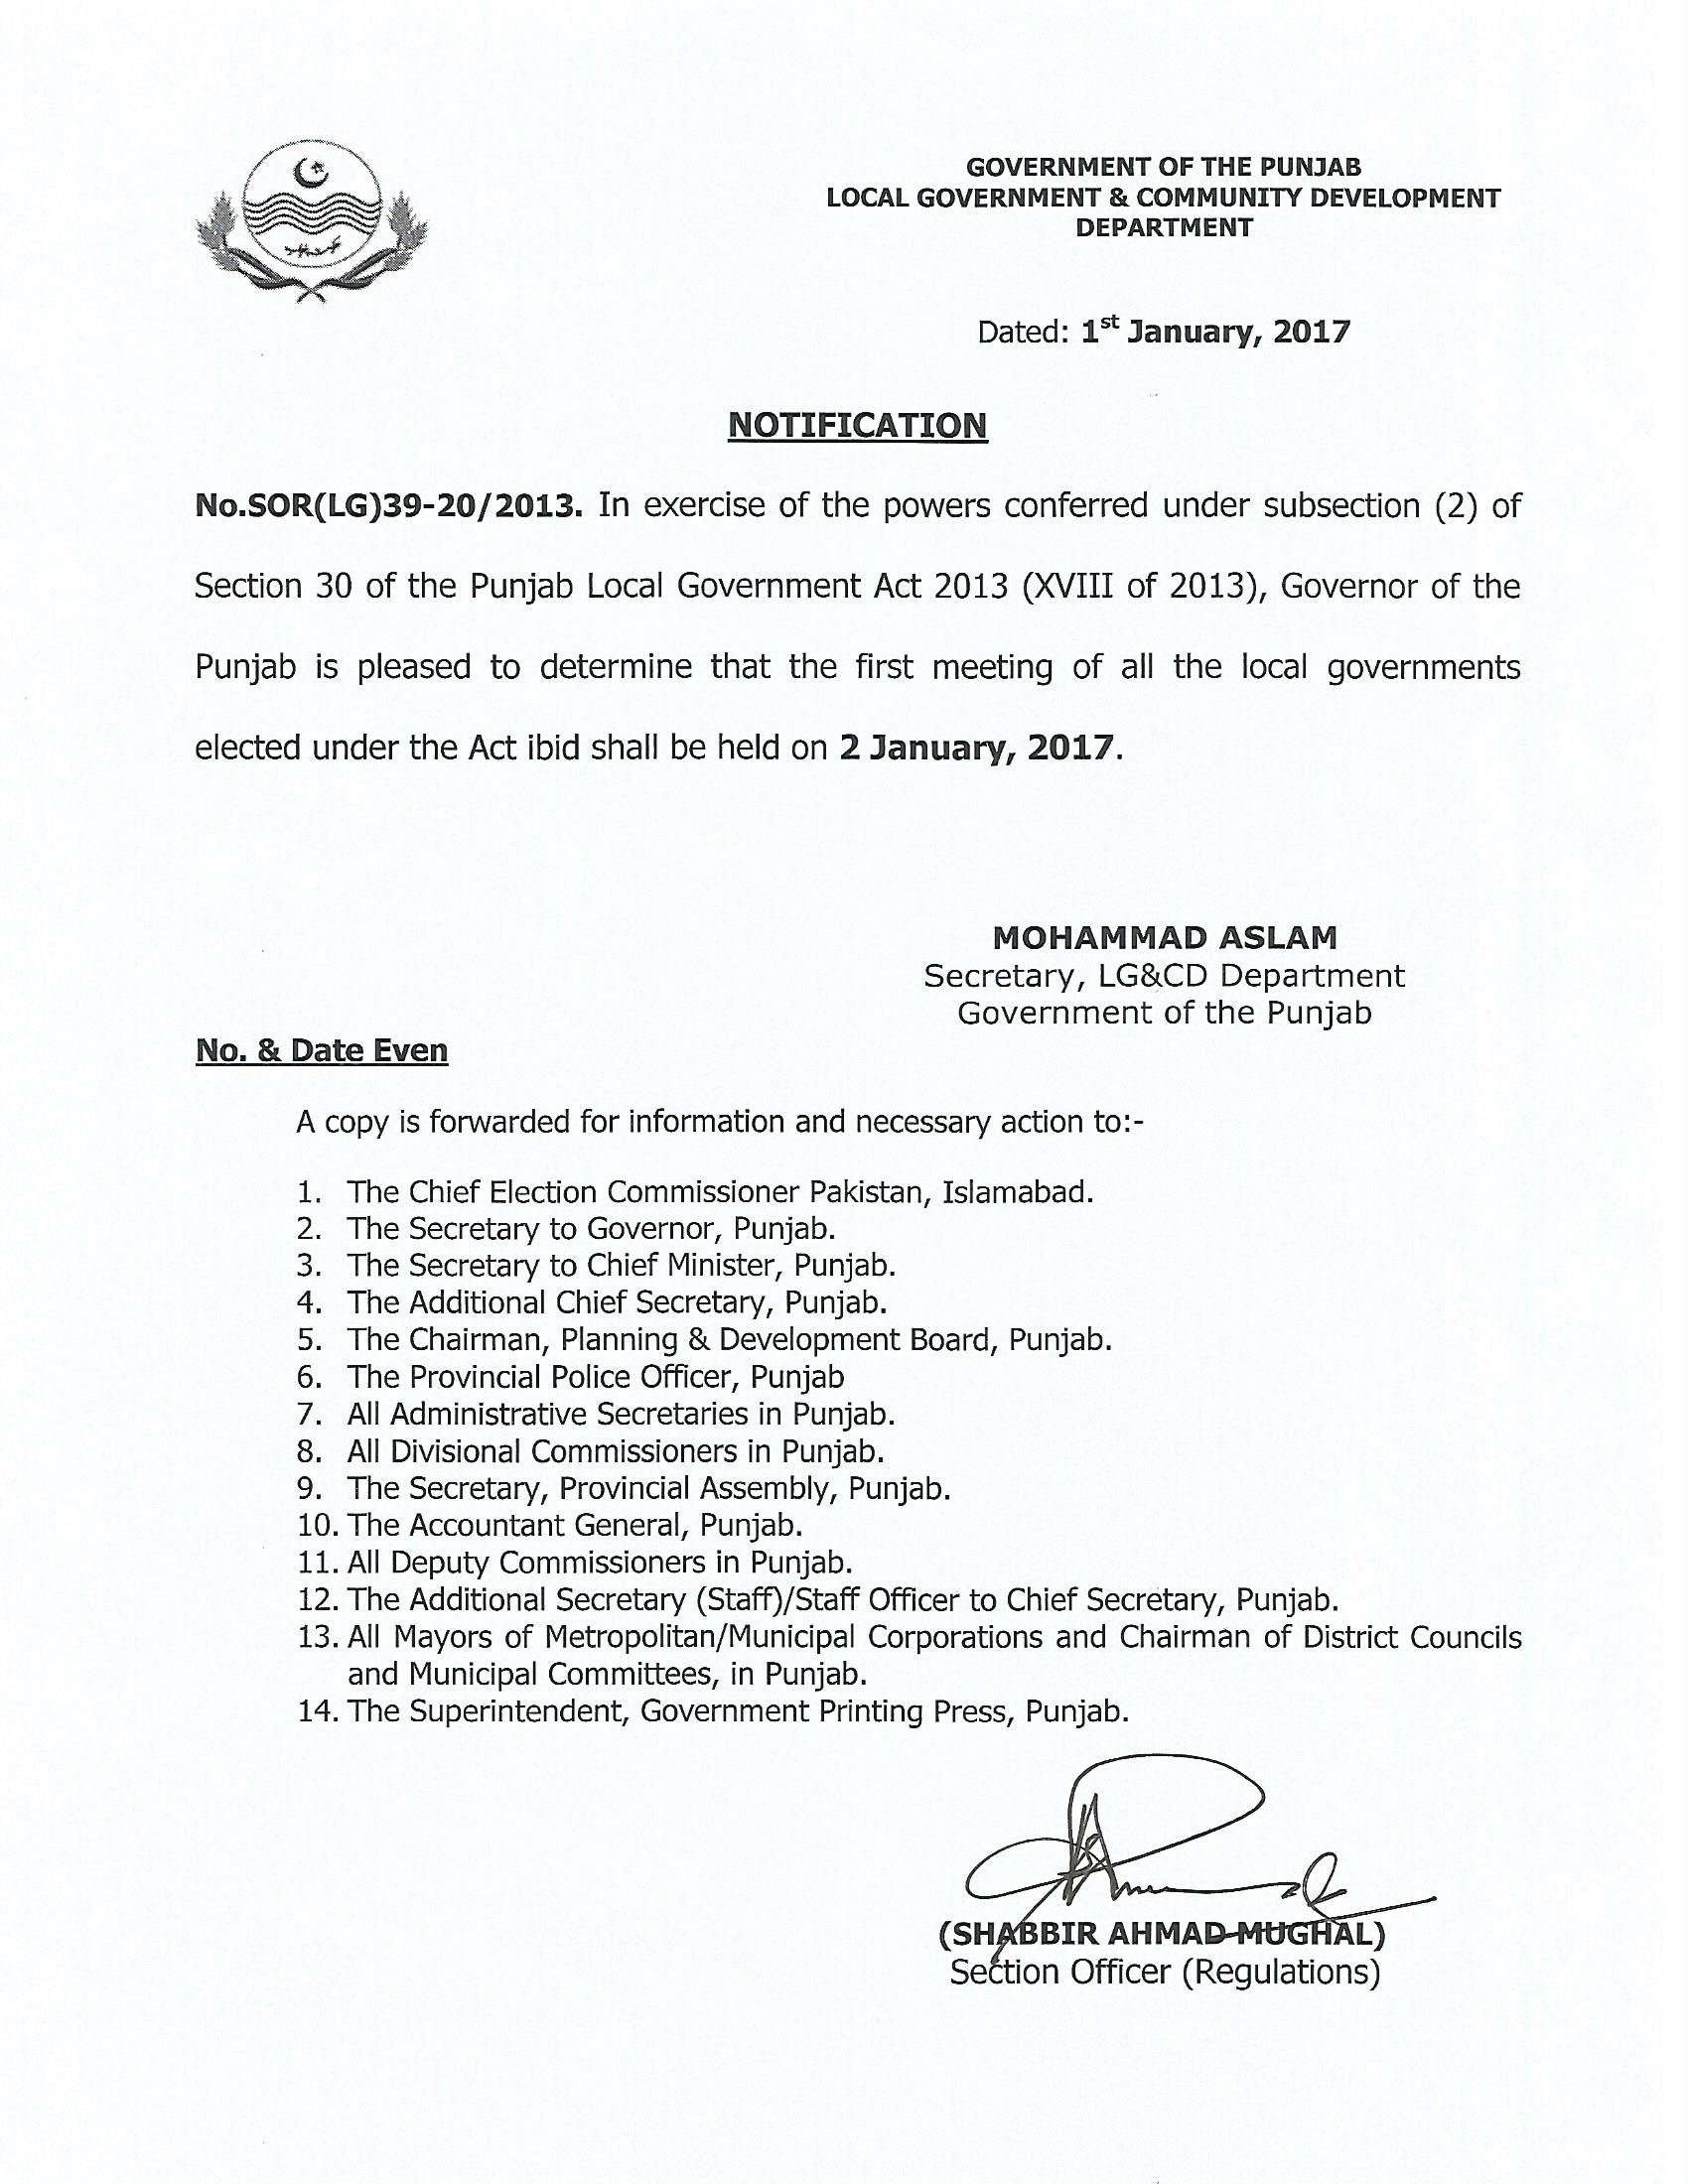 Policy Paper on Punjab Provincial Finance Commission (PFC) Award